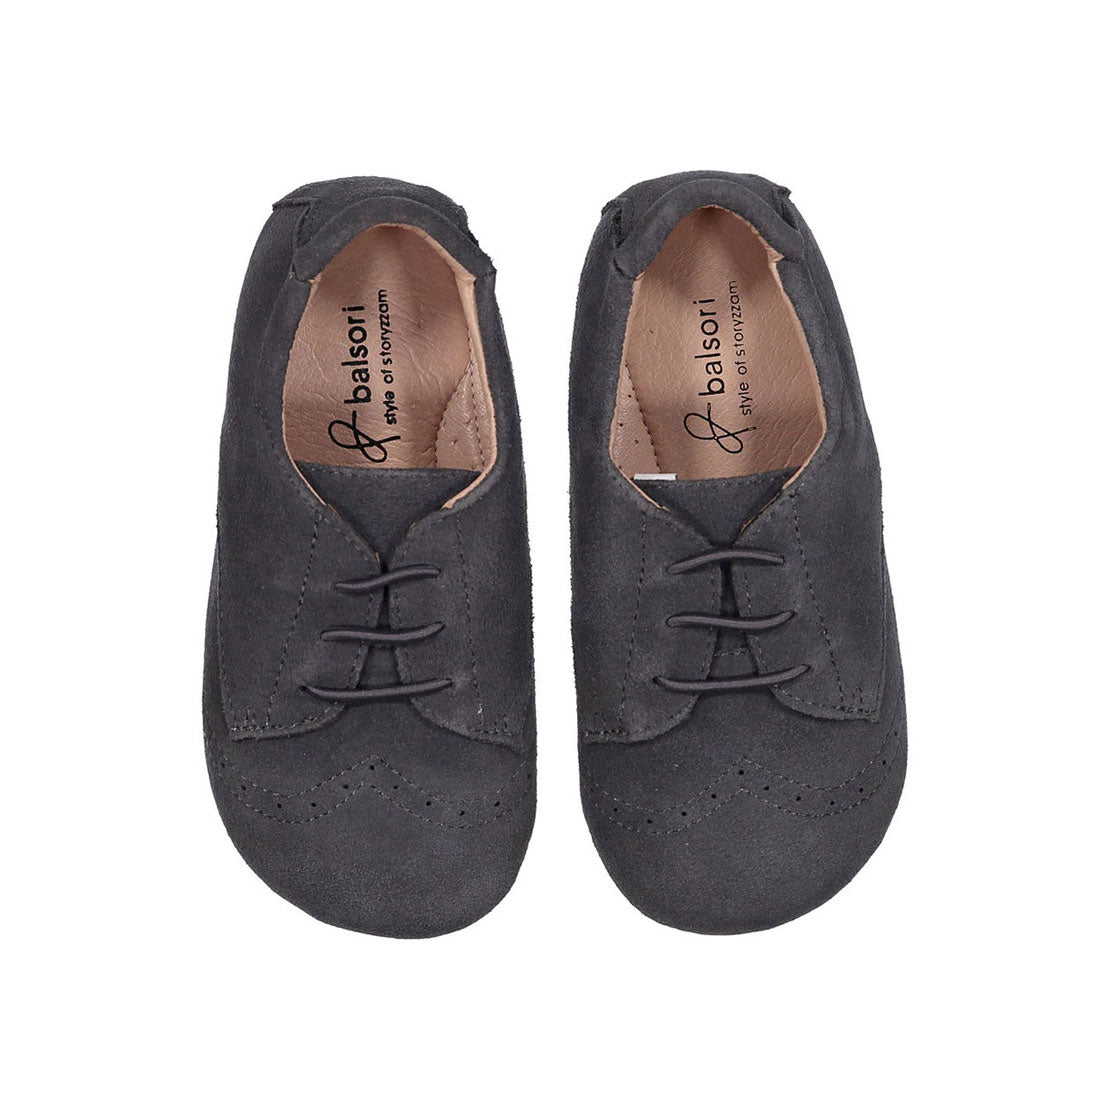 Babyzzam Grey Suede Oxfords